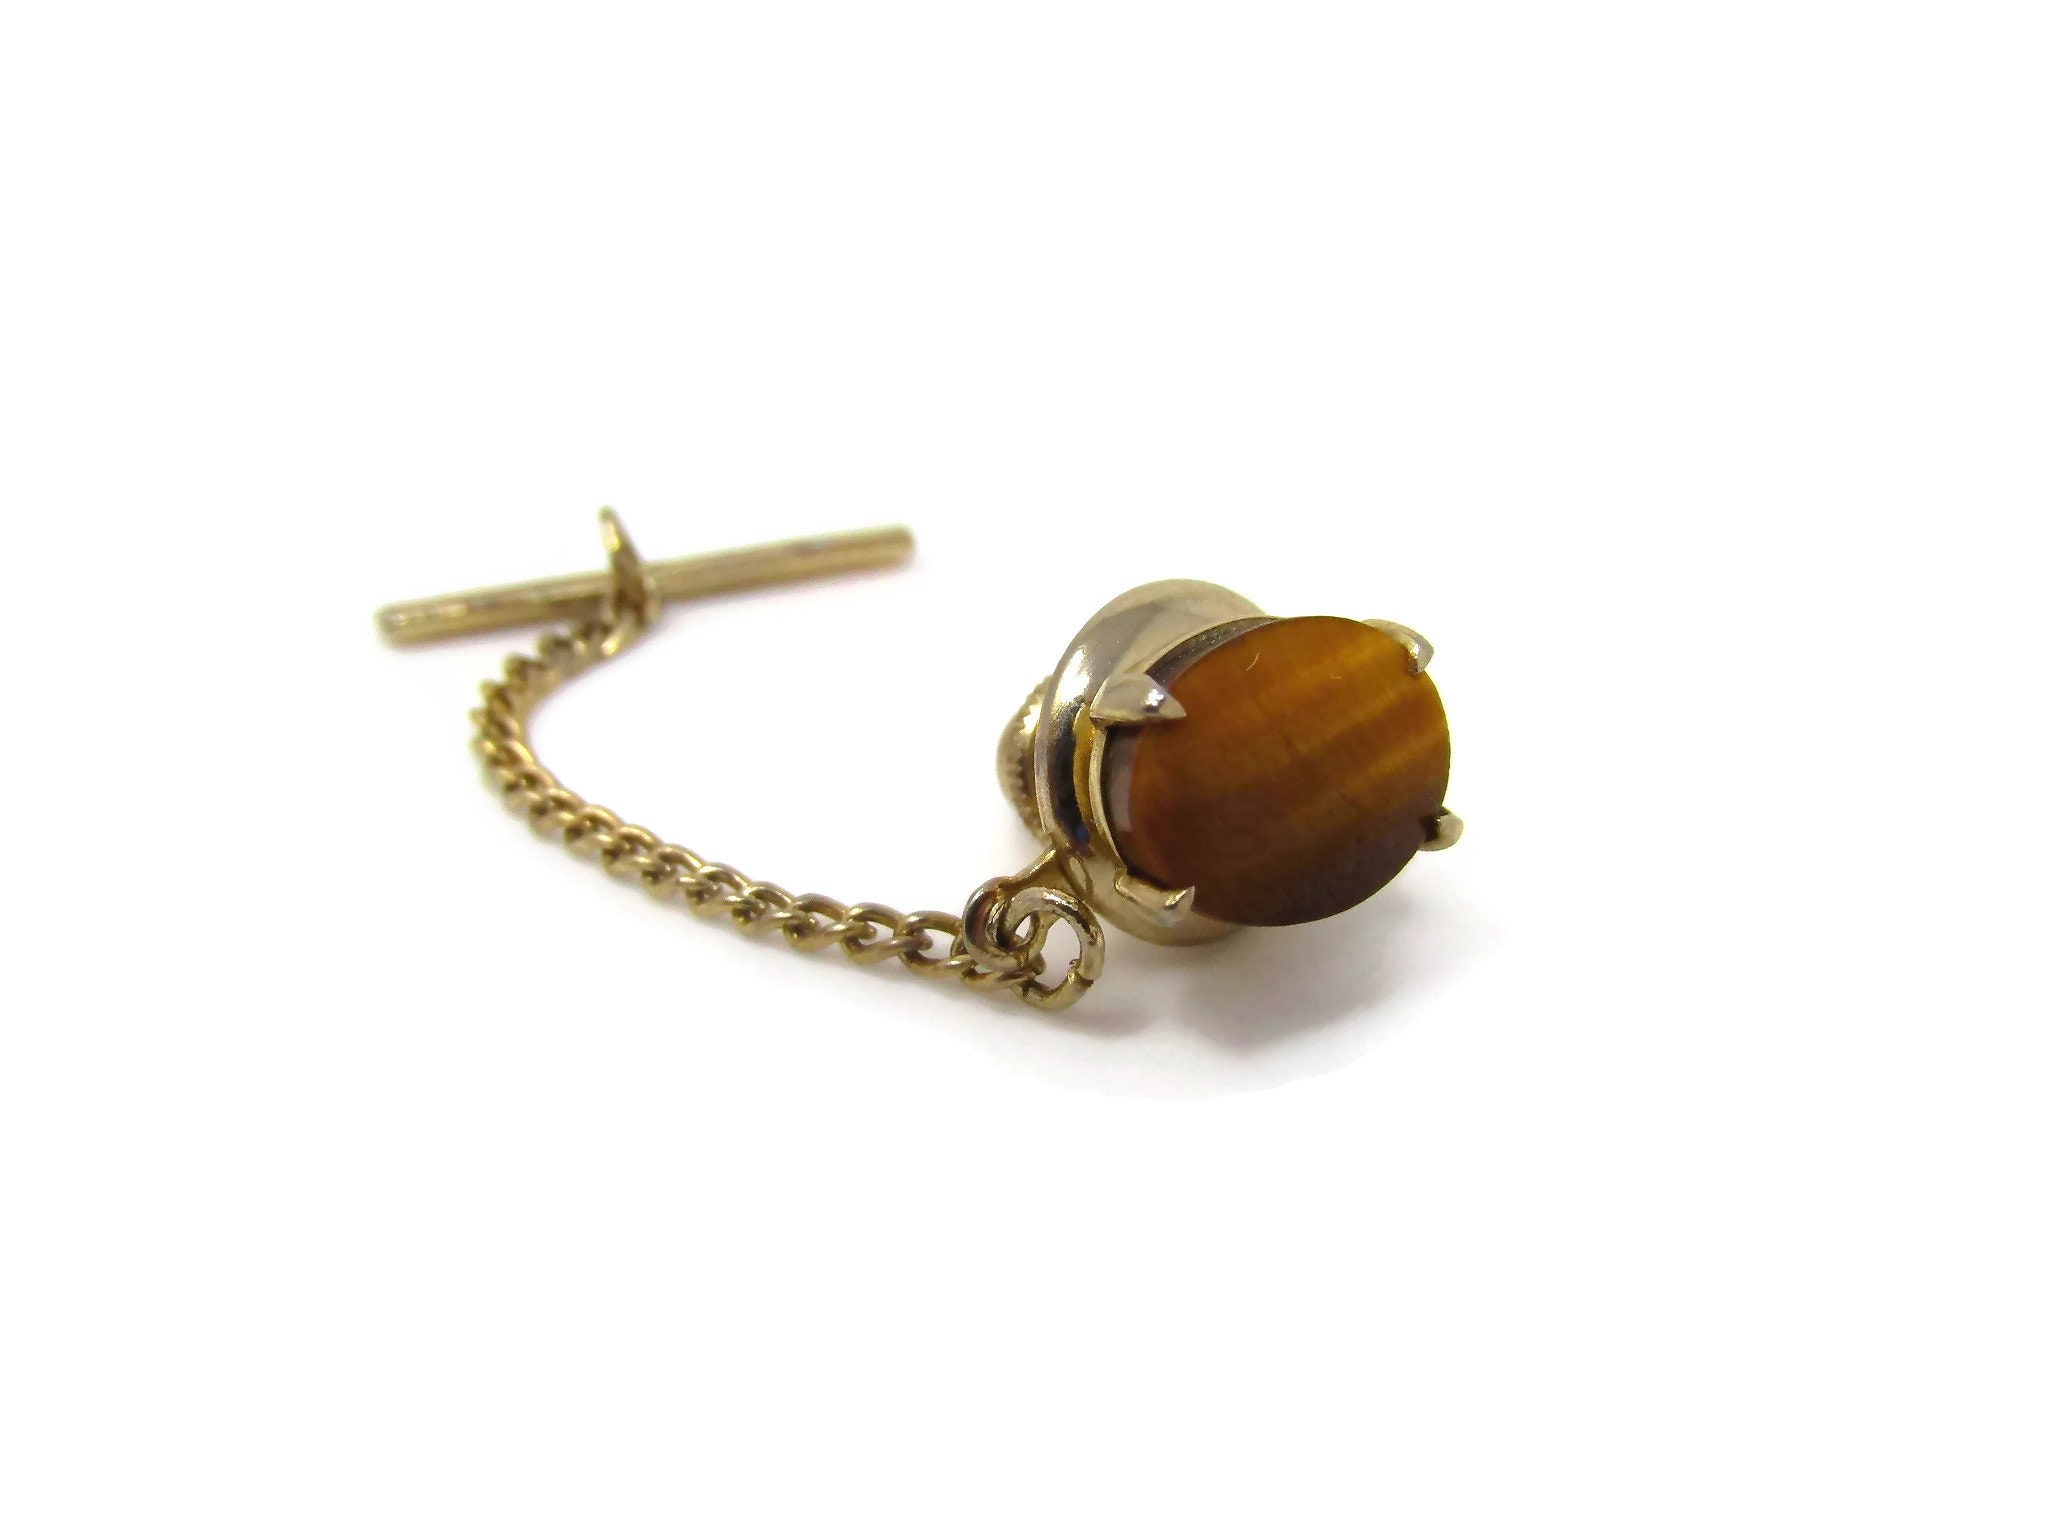 Real Tiger Eye Tie Tack Gold Tone And Stone Tie Tack Tigers Eye Stone Tie Clip Gold Tie Pin For Man Mens Jewelry